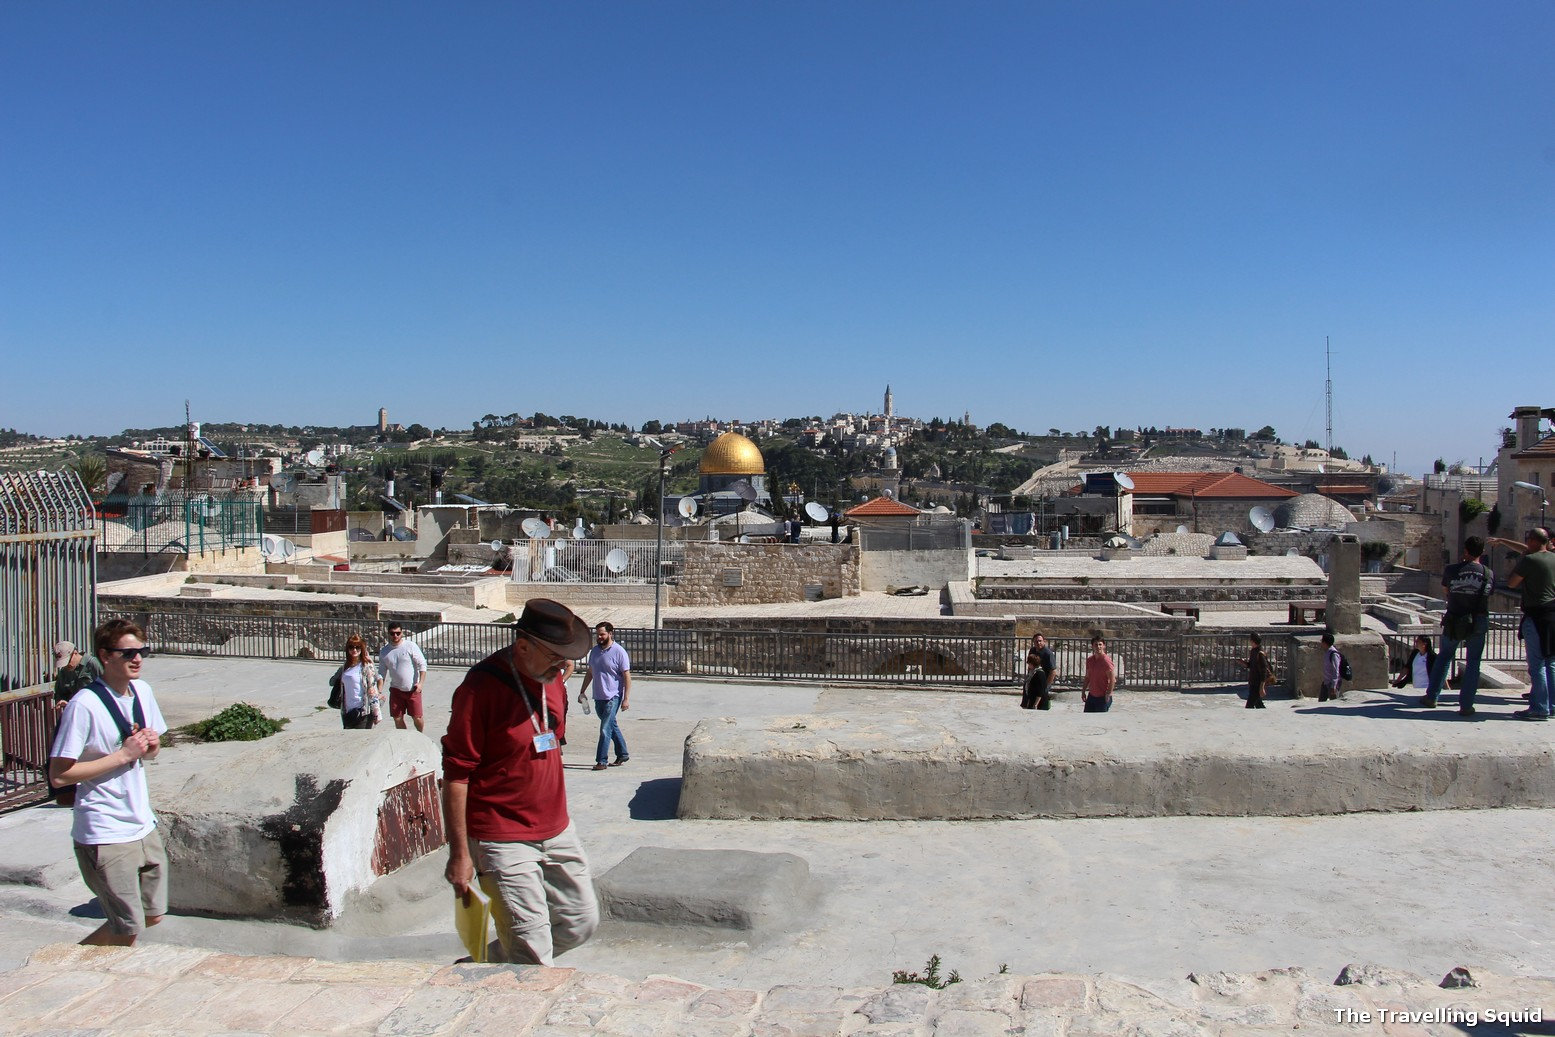 Temple Mount in Jerusalem as a tourist